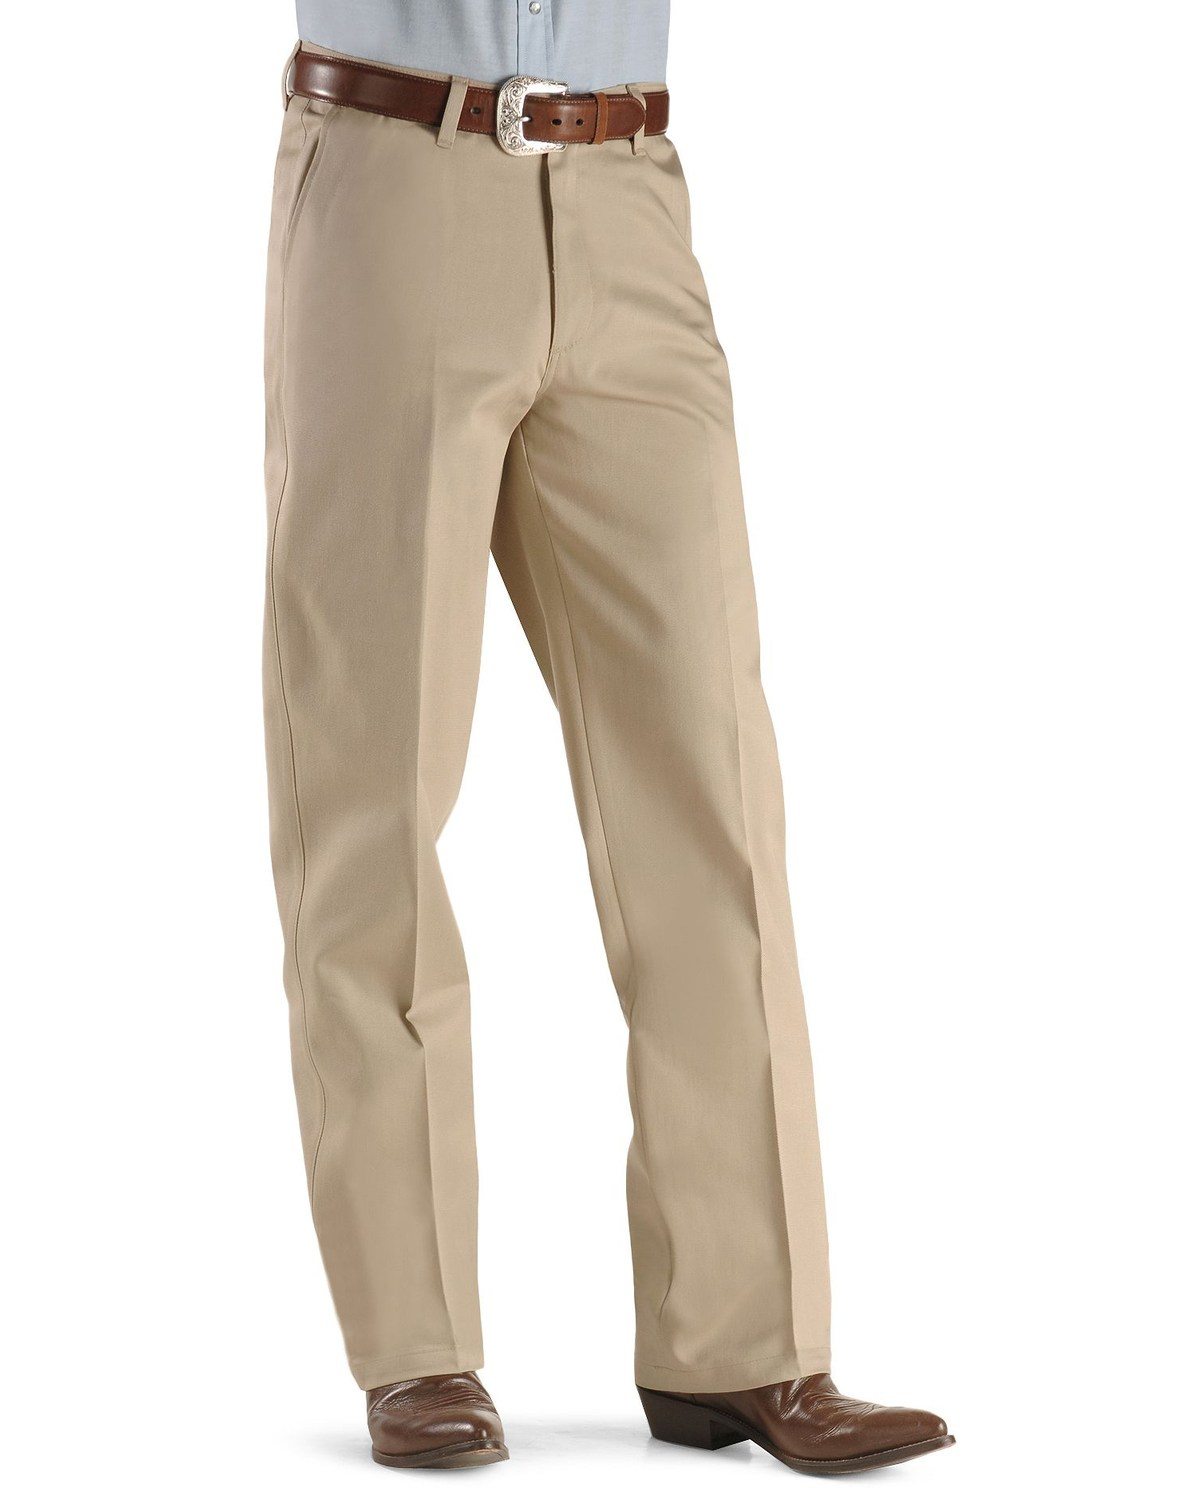 e4aaf766b6 Zoomed Image Wrangler Men's Riata Flat Front Relaxed Fit Pants, Khaki, ...